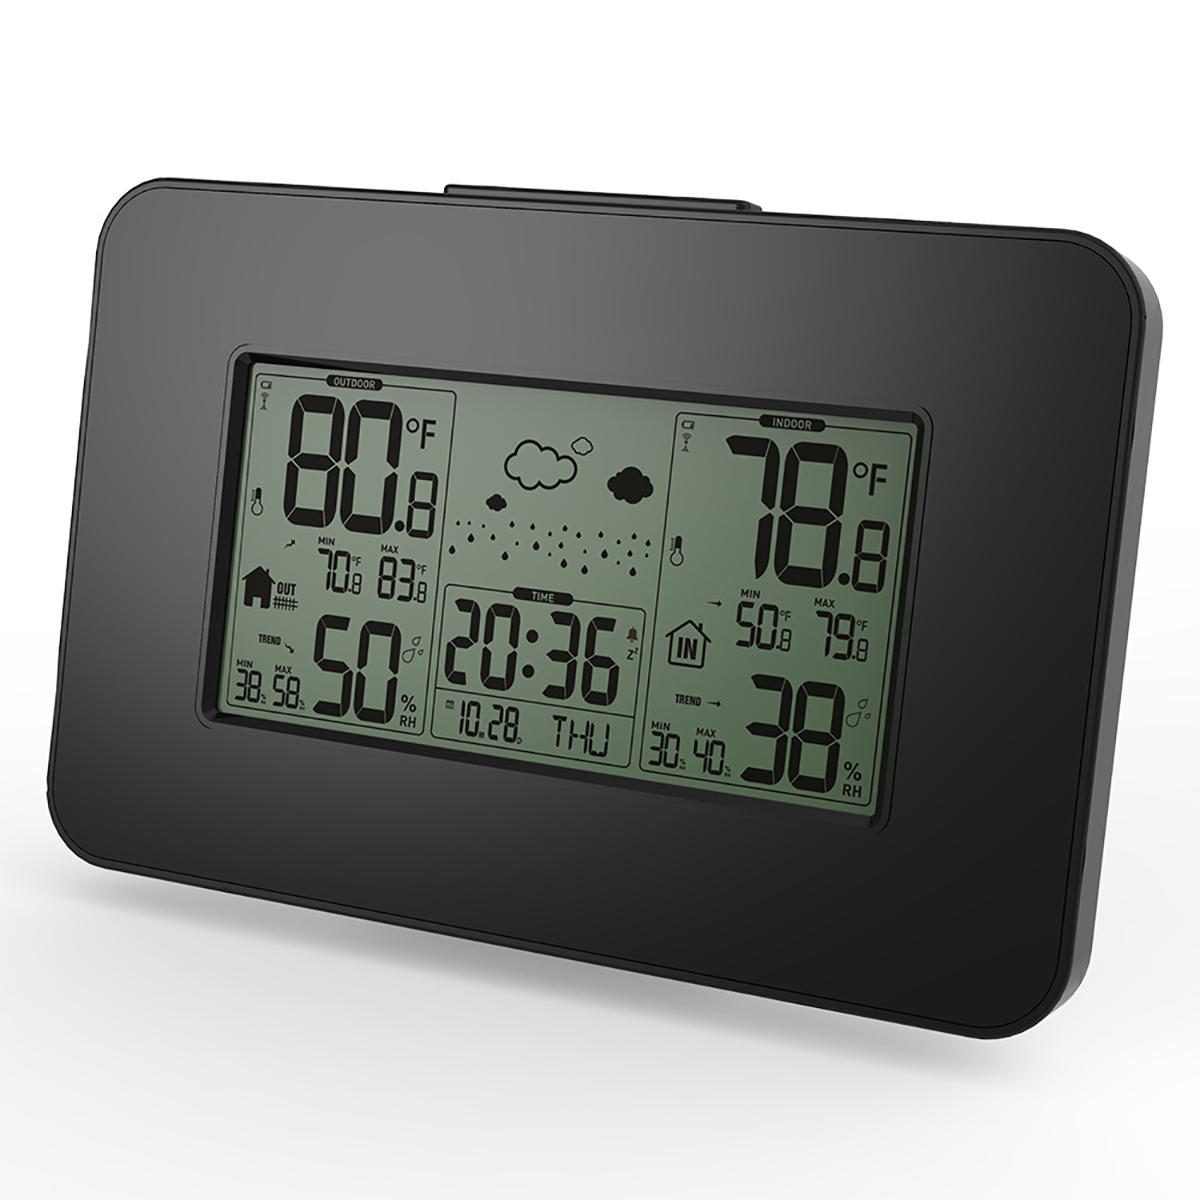 LCD Display Weather Station Clock Alert Electronic Temperature Thermometer Humidity With Sensor